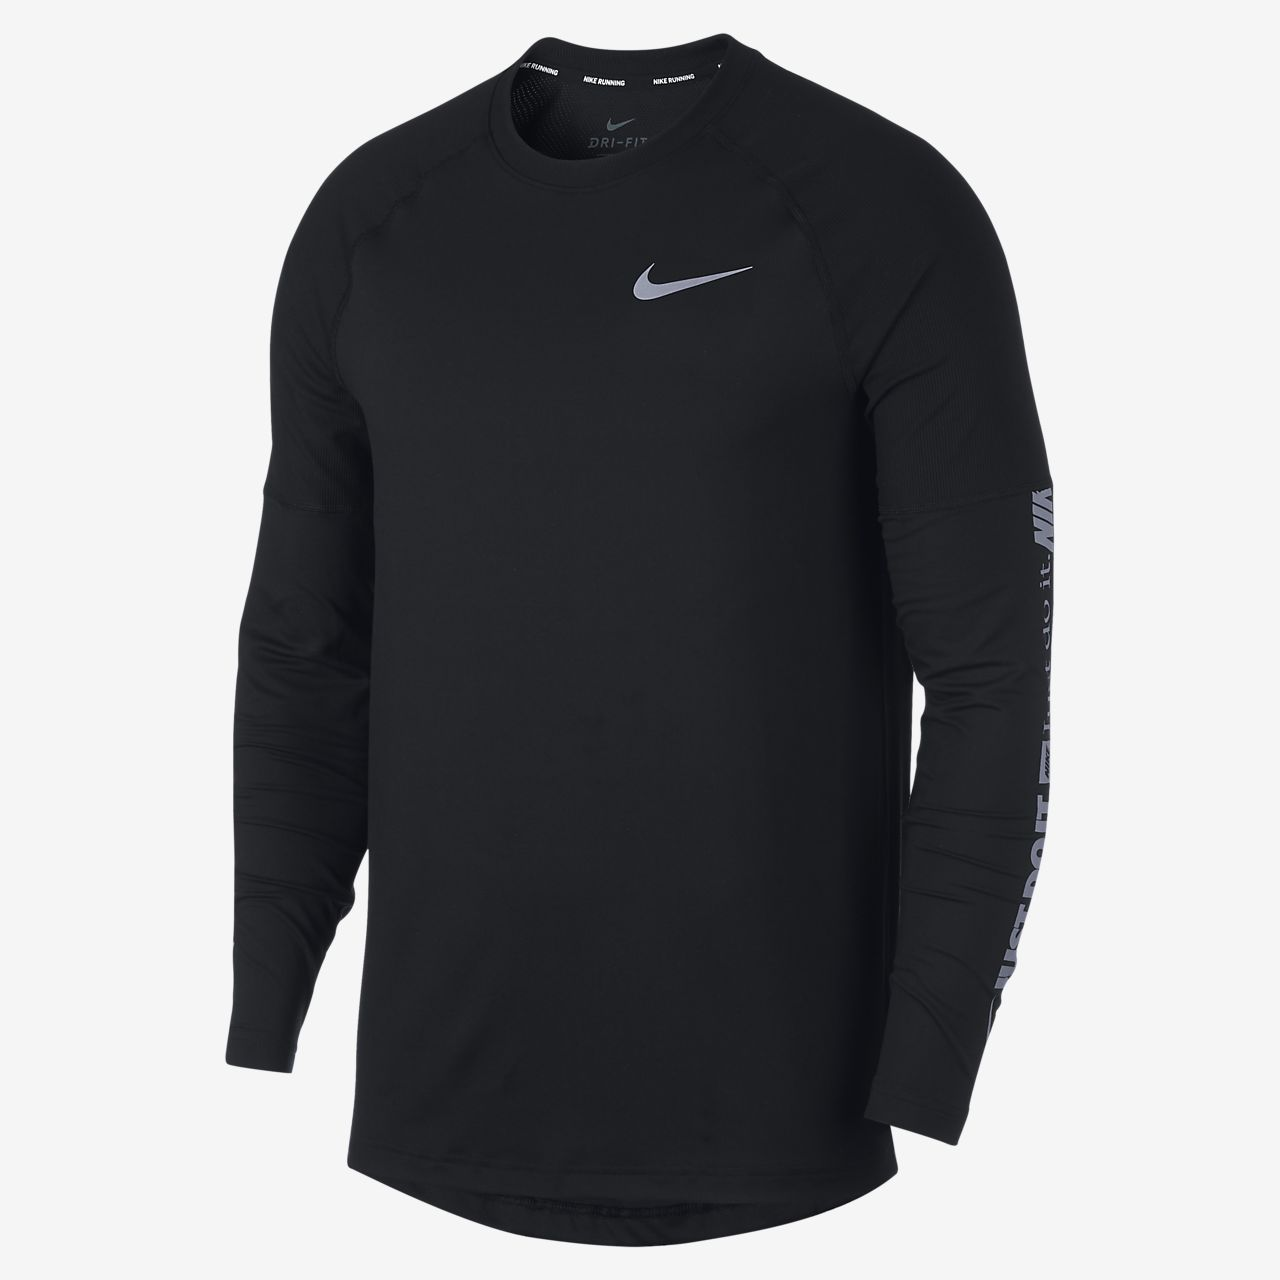 Nike Element Men's Long-Sleeve Running Top